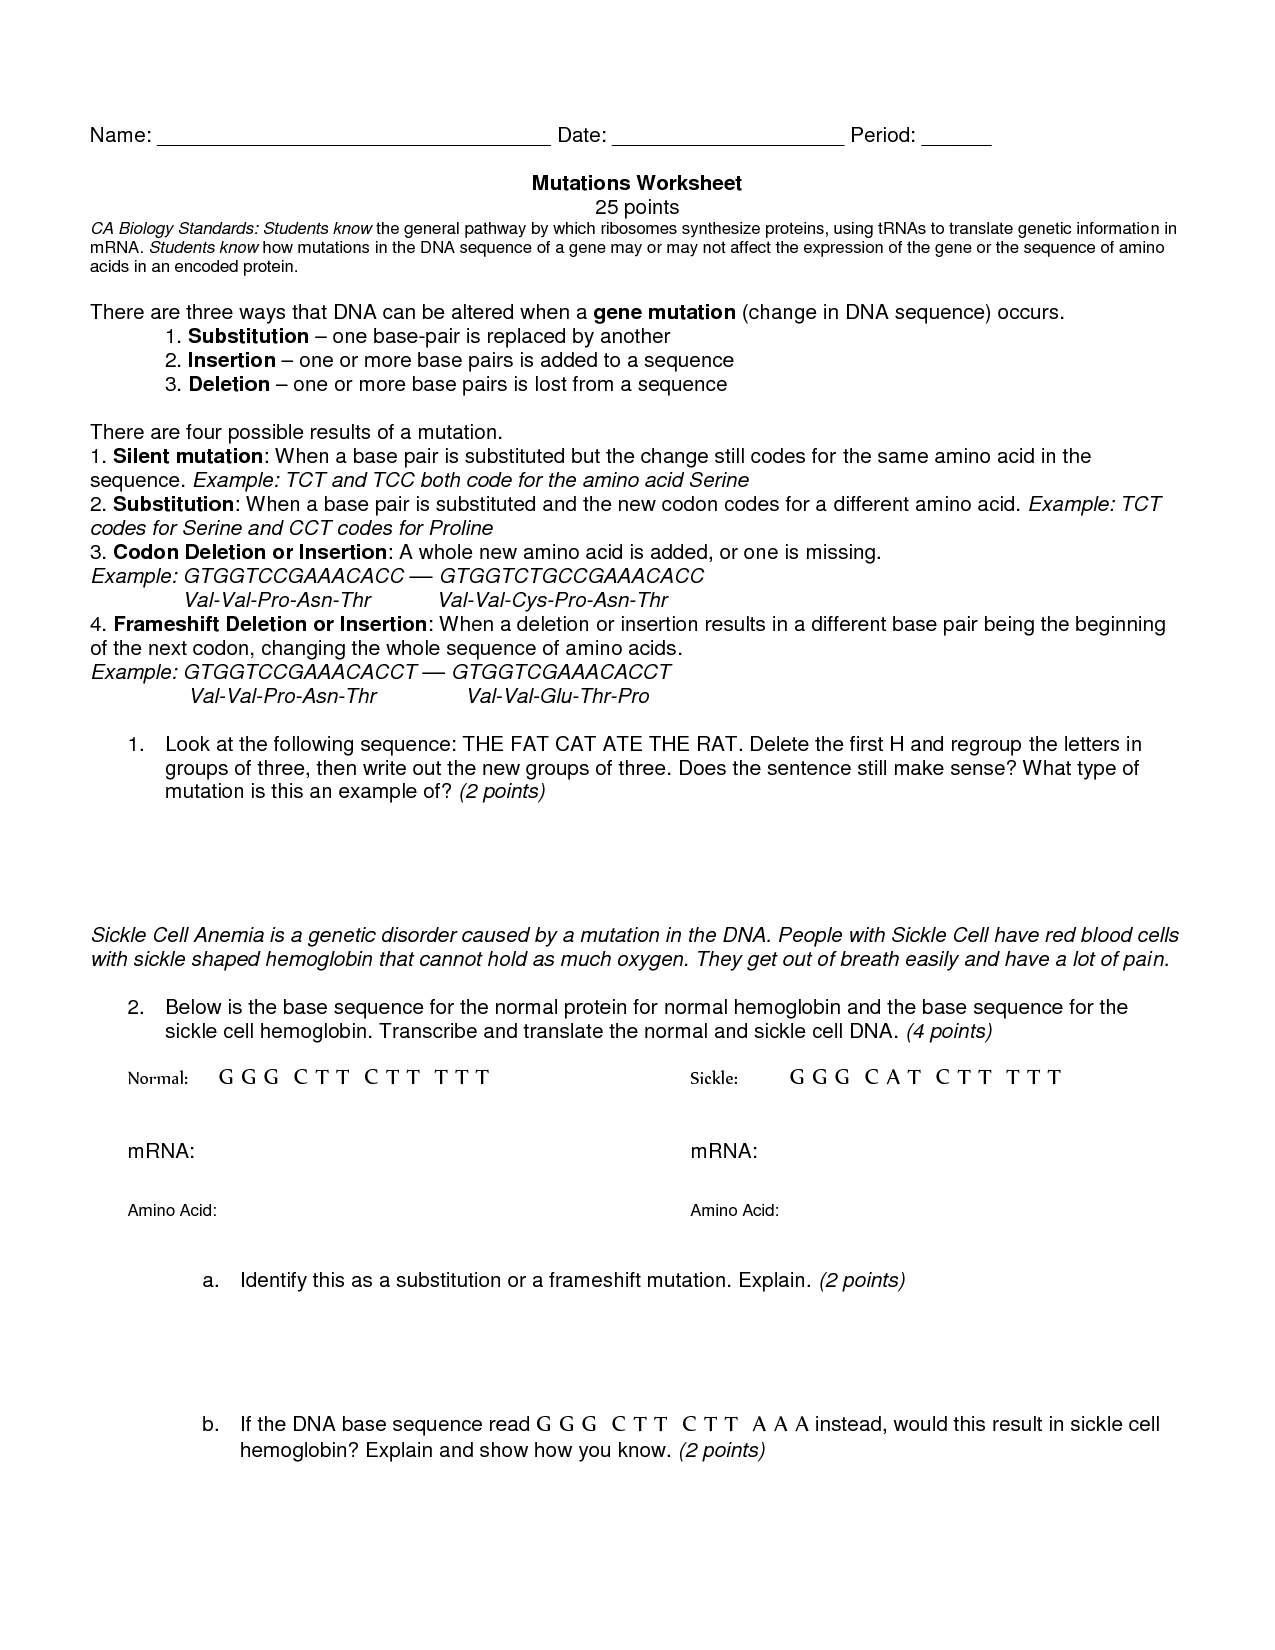 Genetic Mutations Worksheet Answer Key